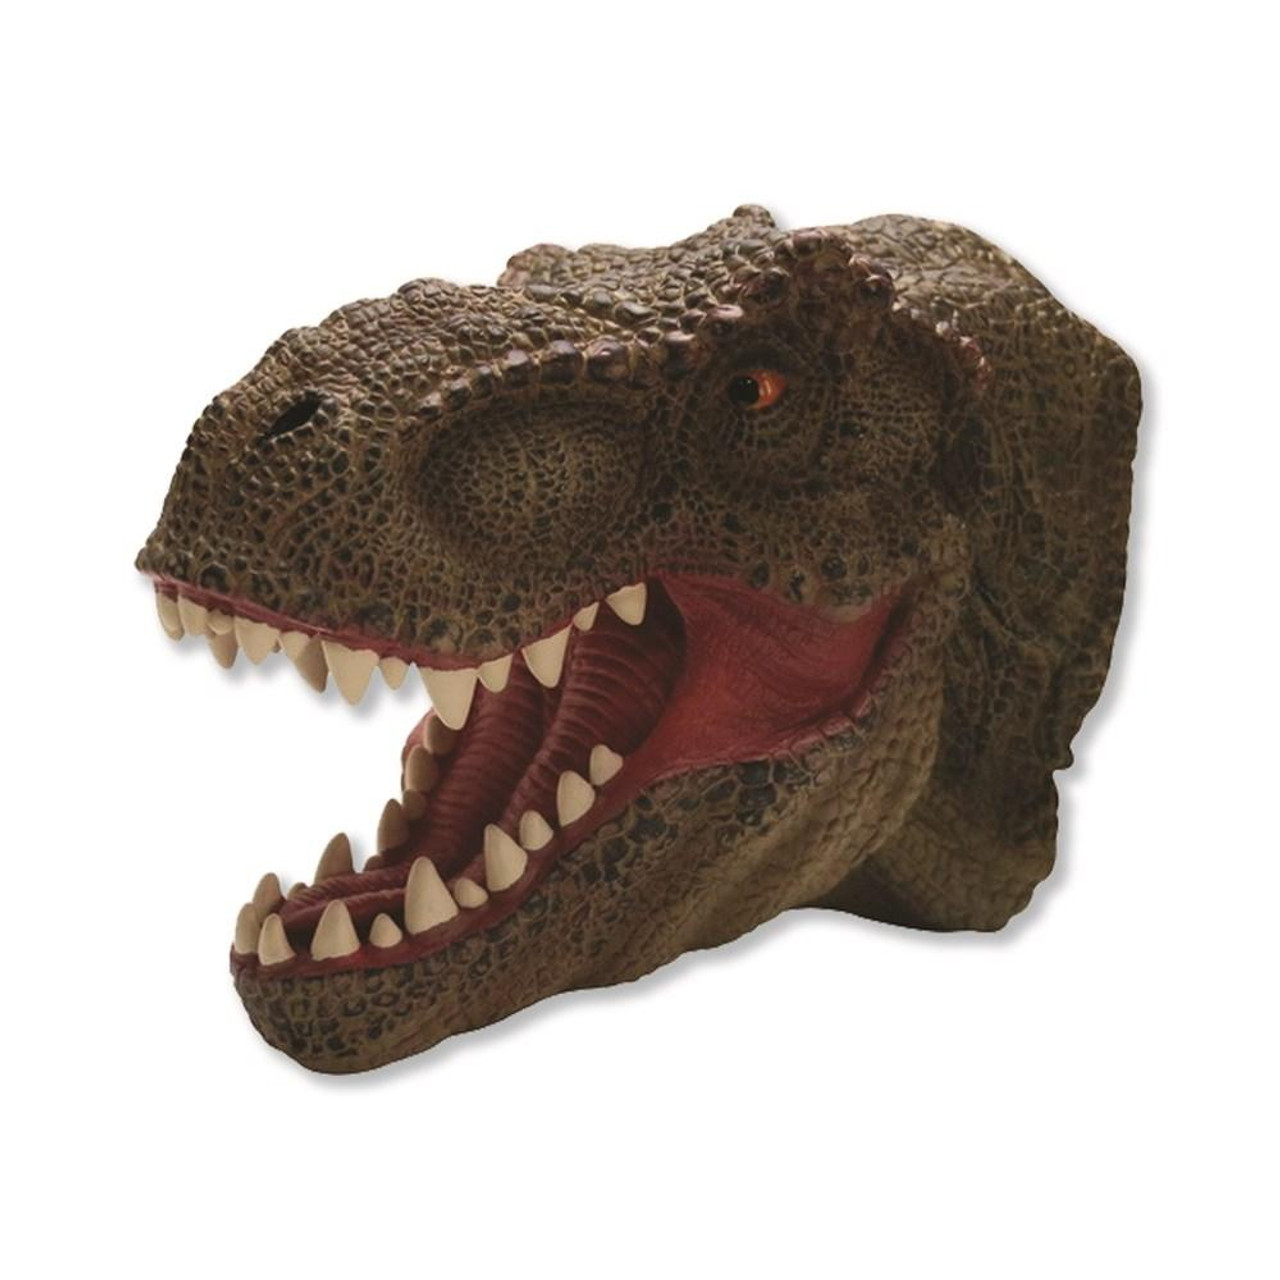 Johnco Dinosaur Hand Puppet T-REX at Baby Barn Discounts Johnco wonderful hand puppet made from soft rubber with life like features